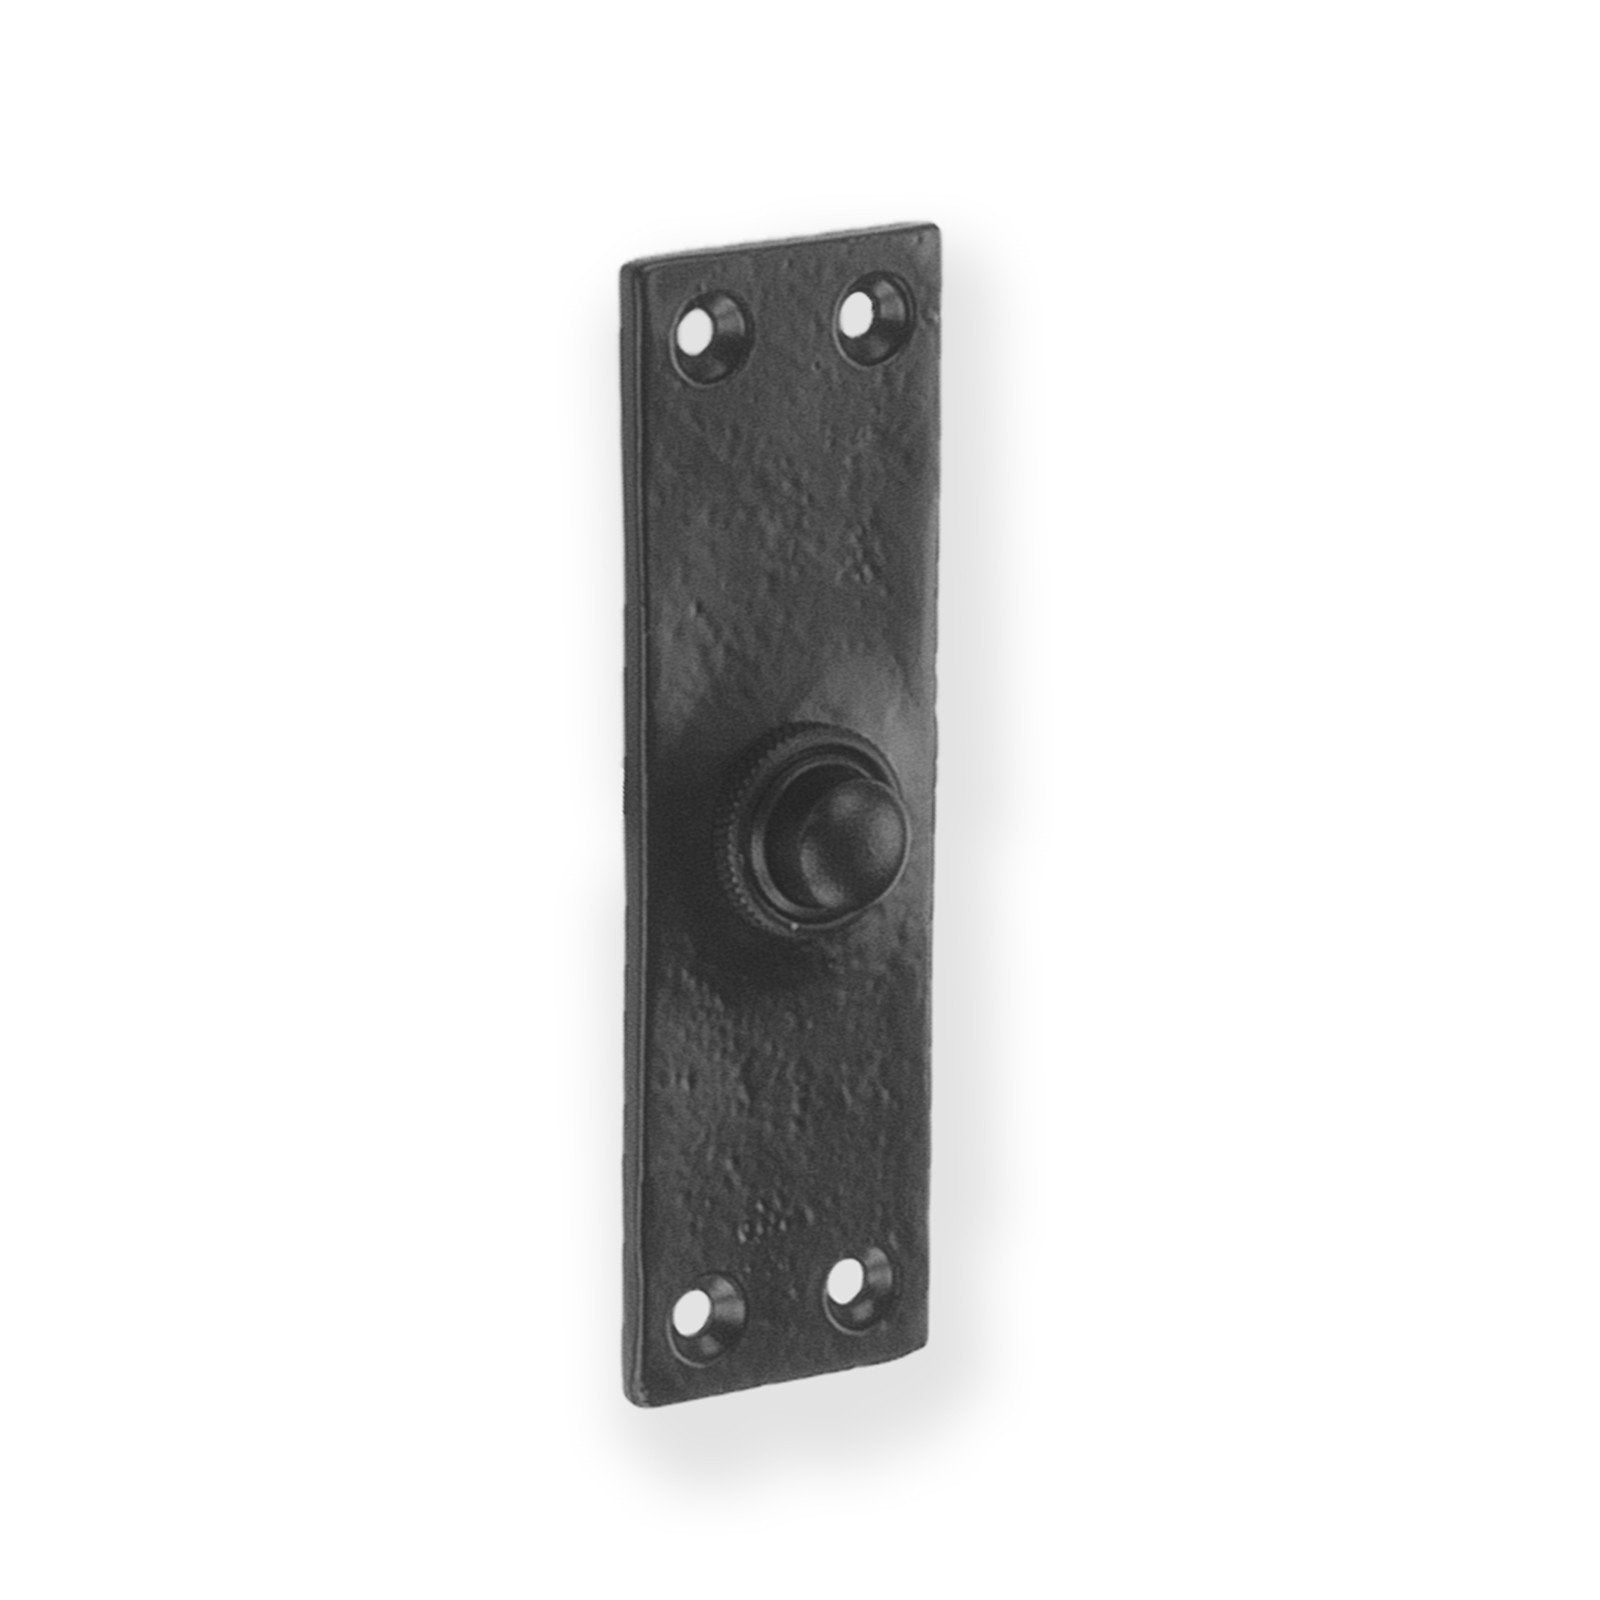 Door Bell Plate Black Cast Iron, exterior door bell plates